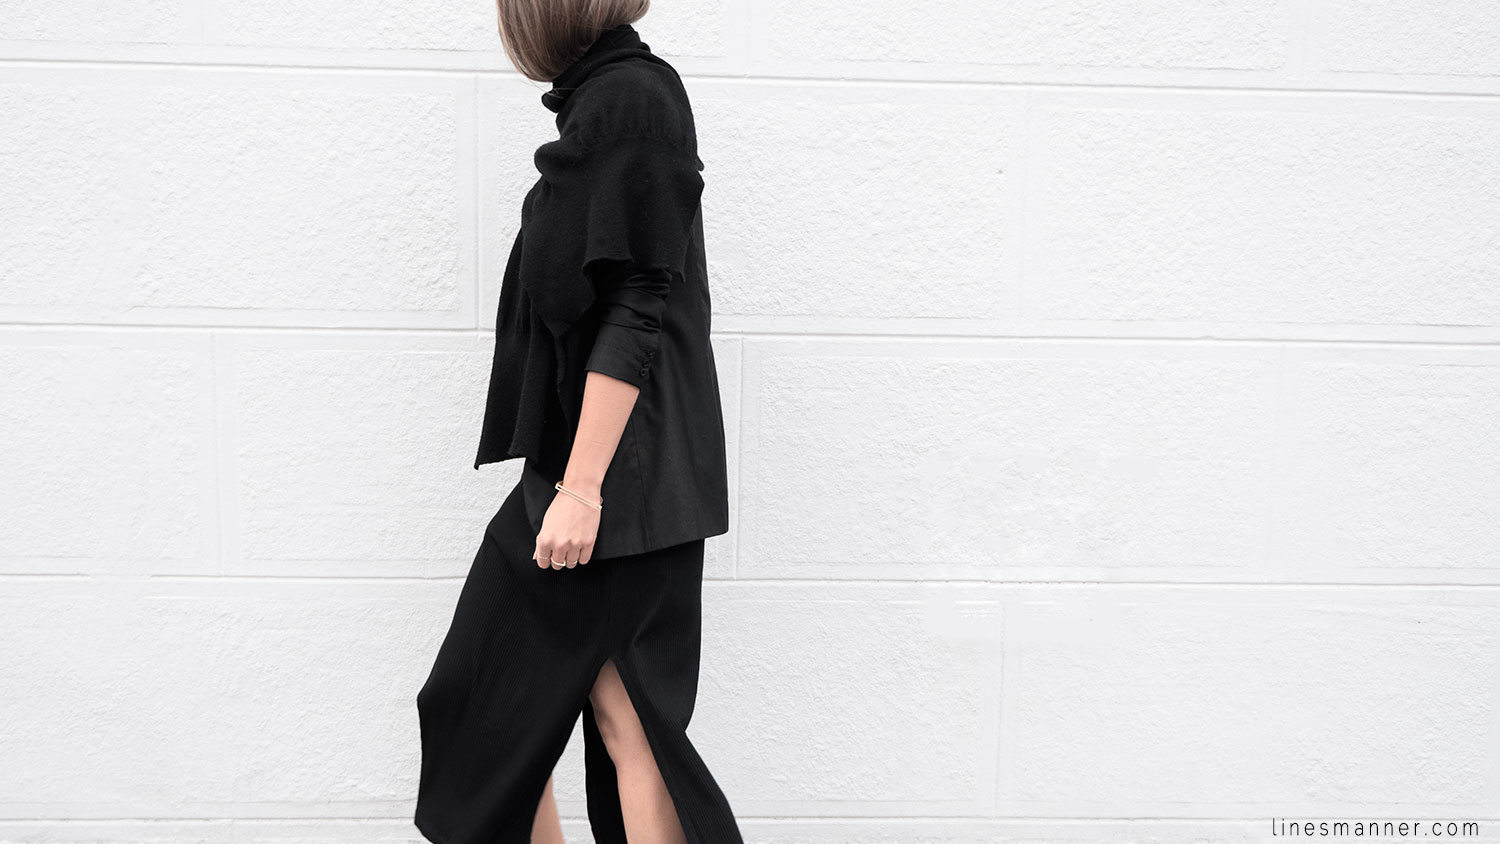 Lines-Manner-Black-Relaxed-Tone_on_Tone-Monochrome-Minimal-Sophistication-Comfort-Modern-Simplicity-Casual-Sporty_Luxe-Slit_Dress-Thrid_Form-Blazer-Essentials-Details-Basics-Timeless-Verstatile-Staple-Wardrobe-Sleek-Clean_Lines-All_Black_Everything-14